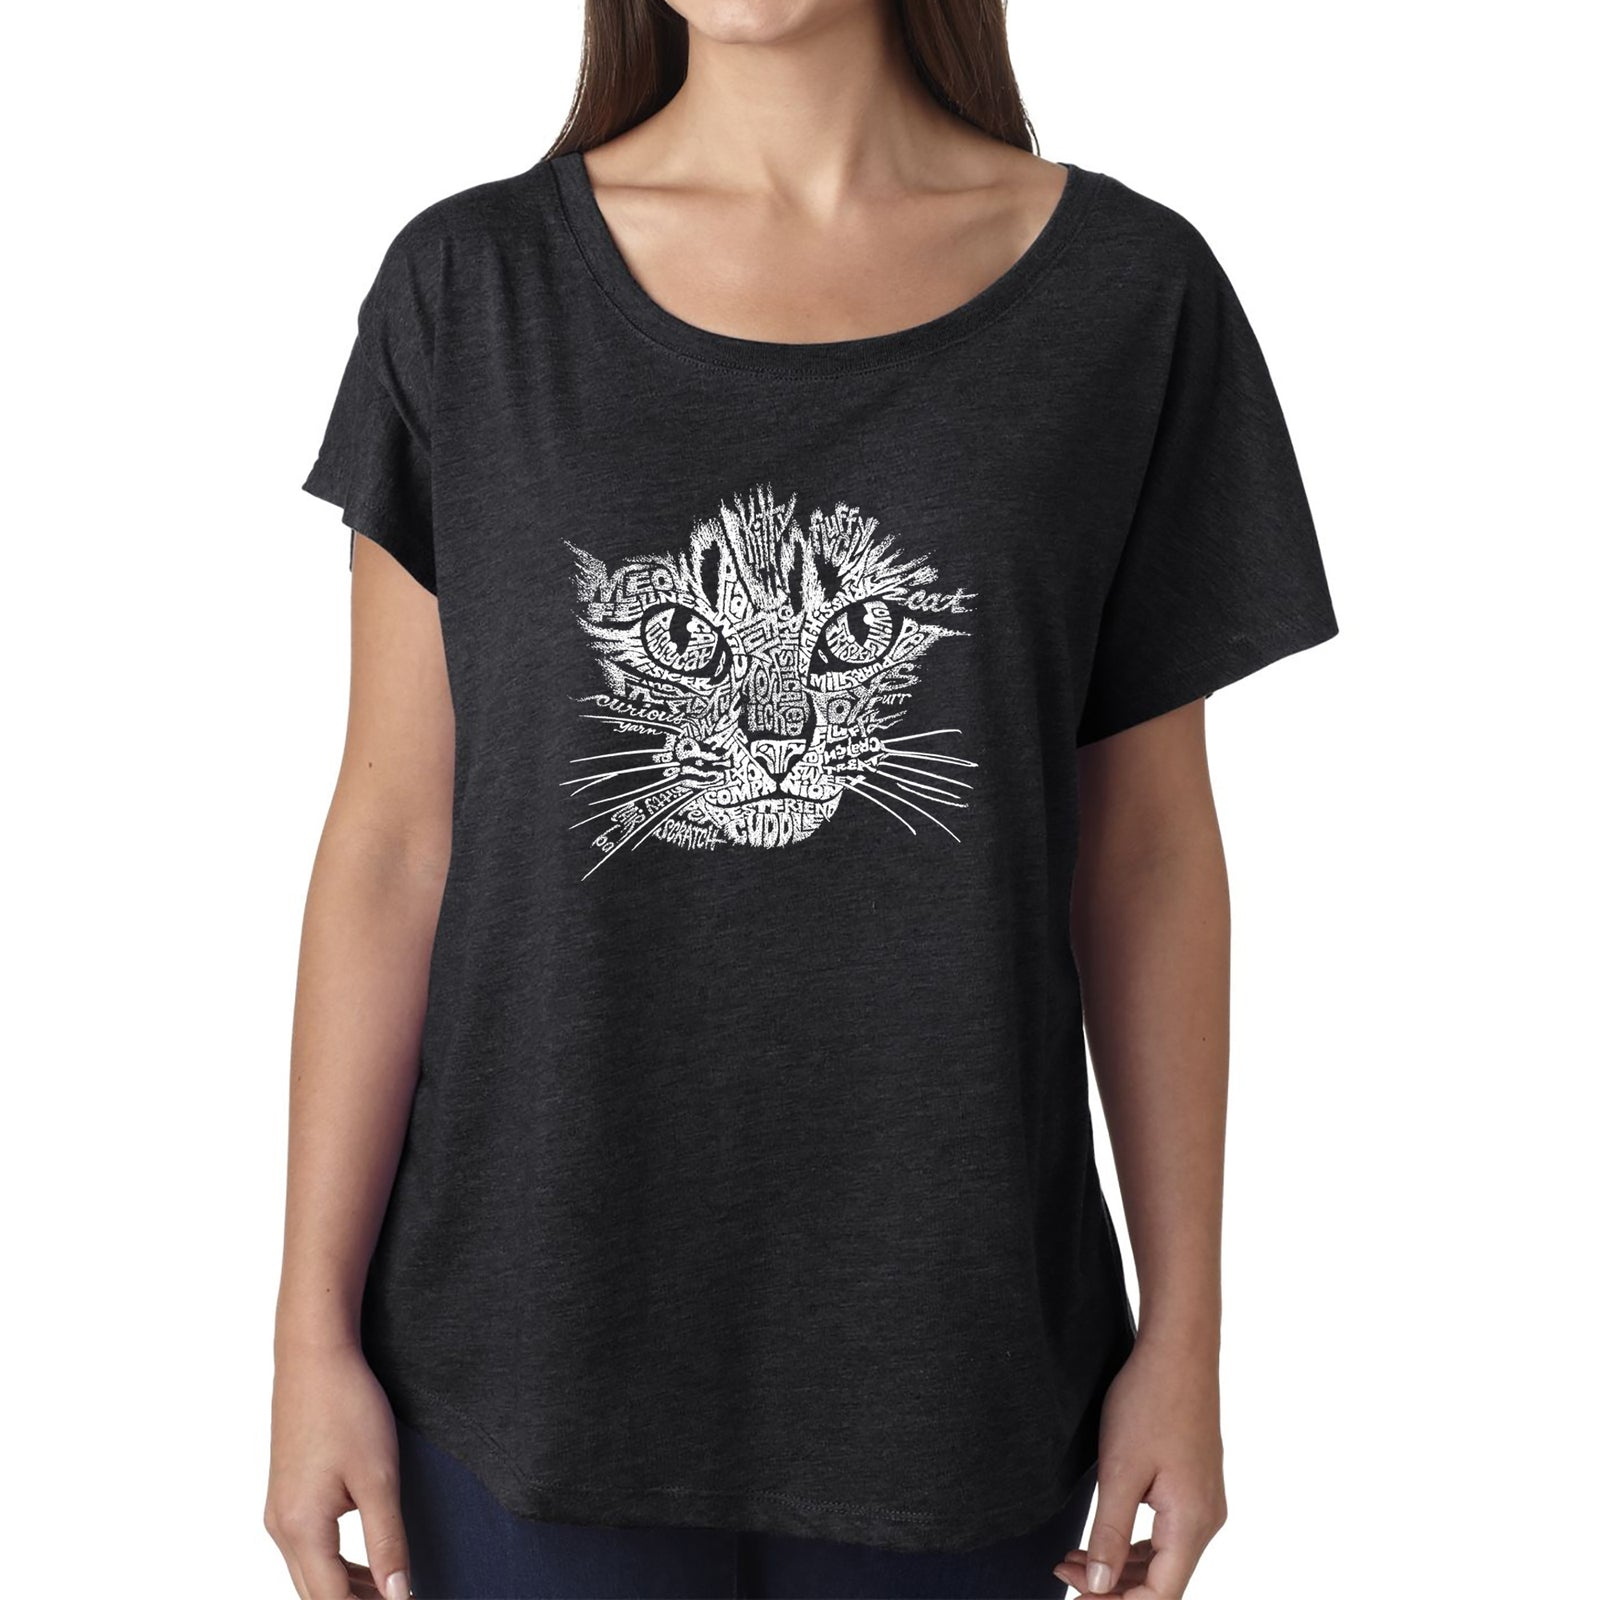 Women's Loose Fit Dolman Cut Word Art Shirt - Cat Face